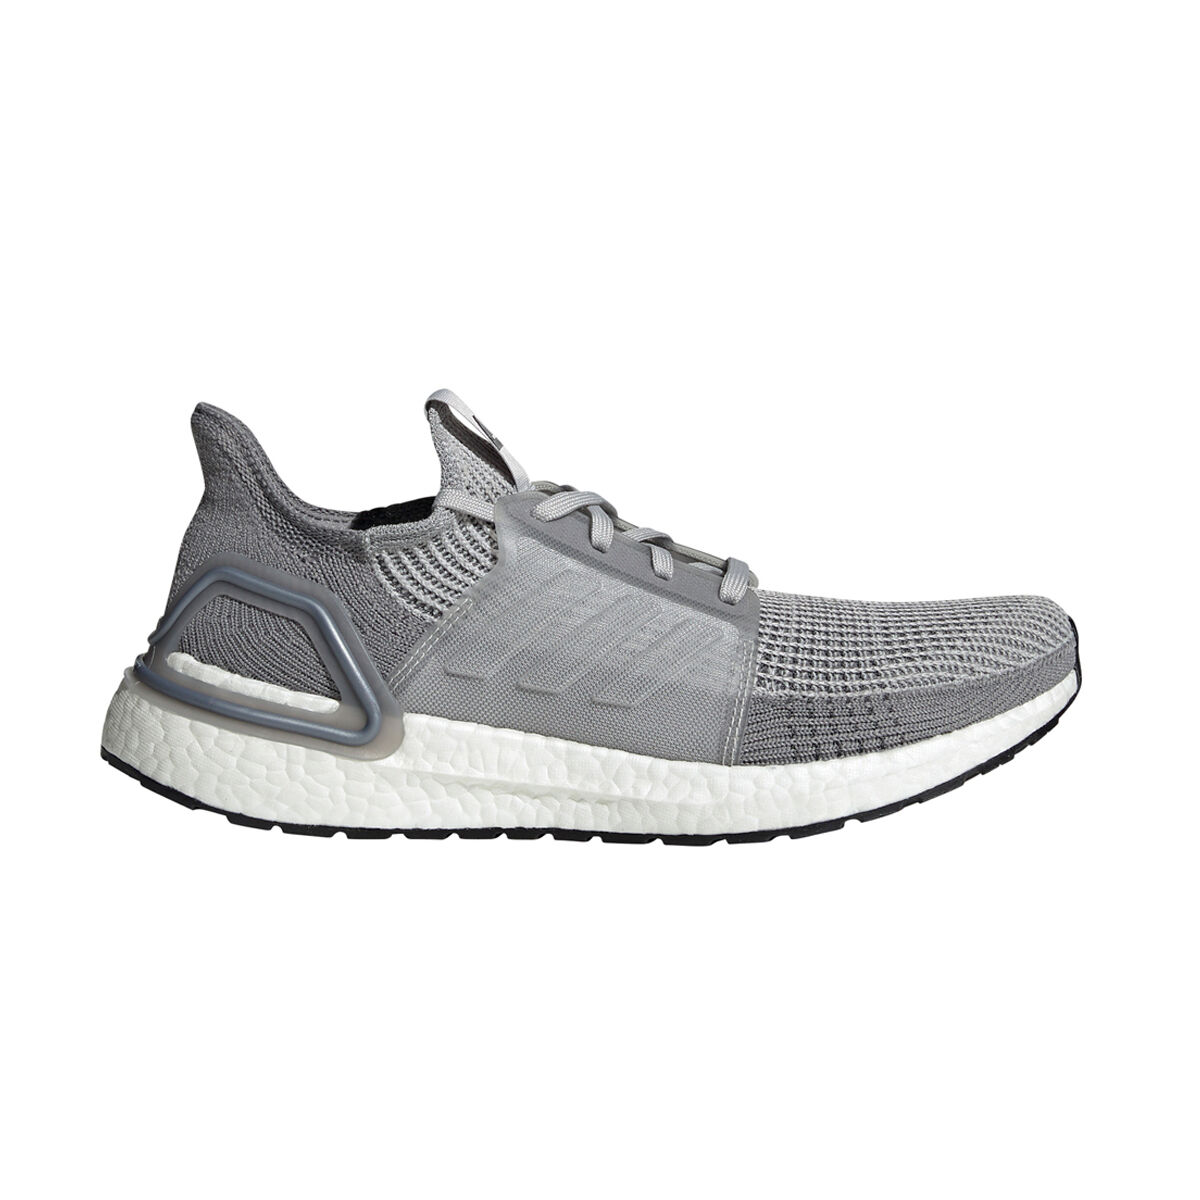 Black Adidas Ultra Boost For Sale | Adidas Sports Shoes In